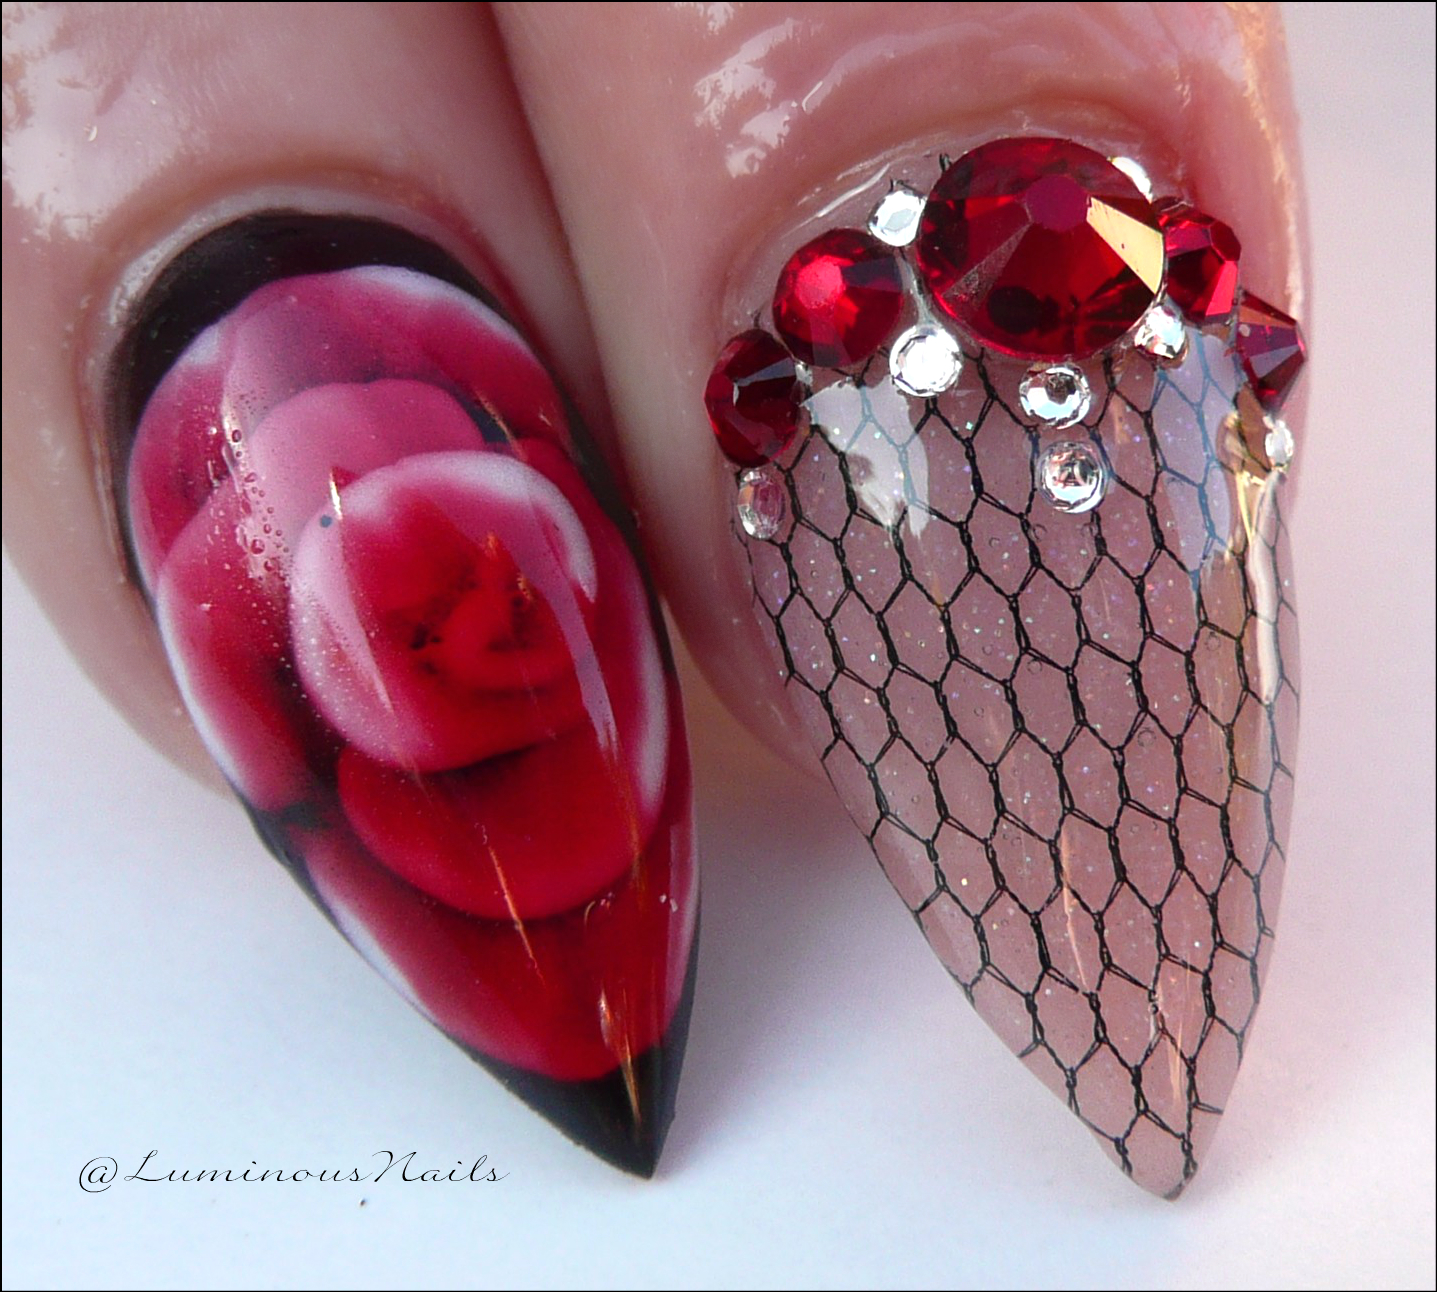 Luminous Nails: Red & Black Acrylic Nails with netting and encased rose